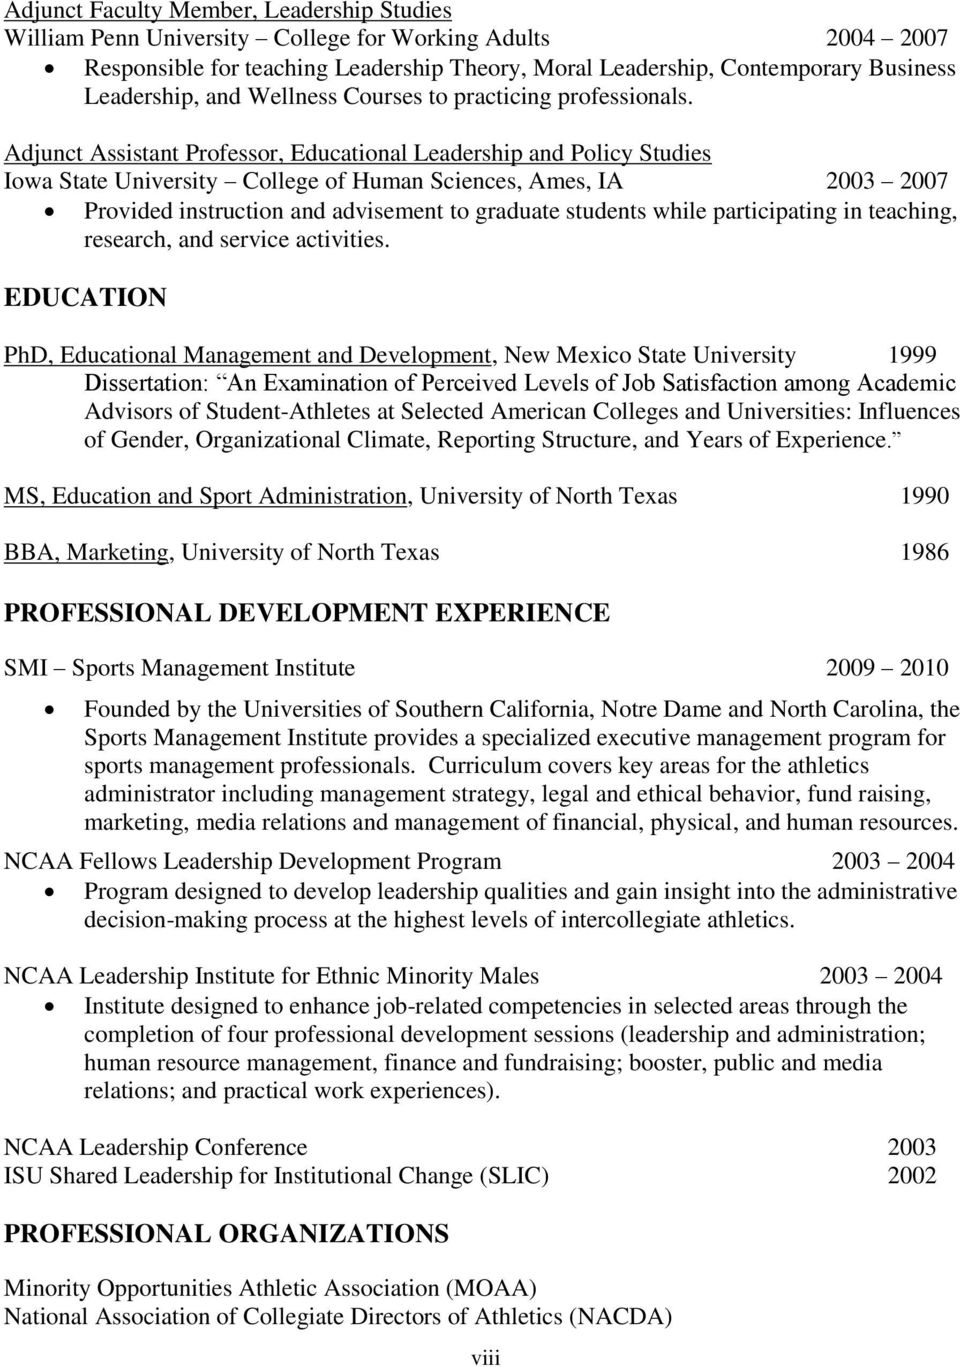 Adjunct Assistant Professor, Educational Leadership and Policy Studies Iowa State University College of Human Sciences, Ames, IA 2003 2007 Provided instruction and advisement to graduate students